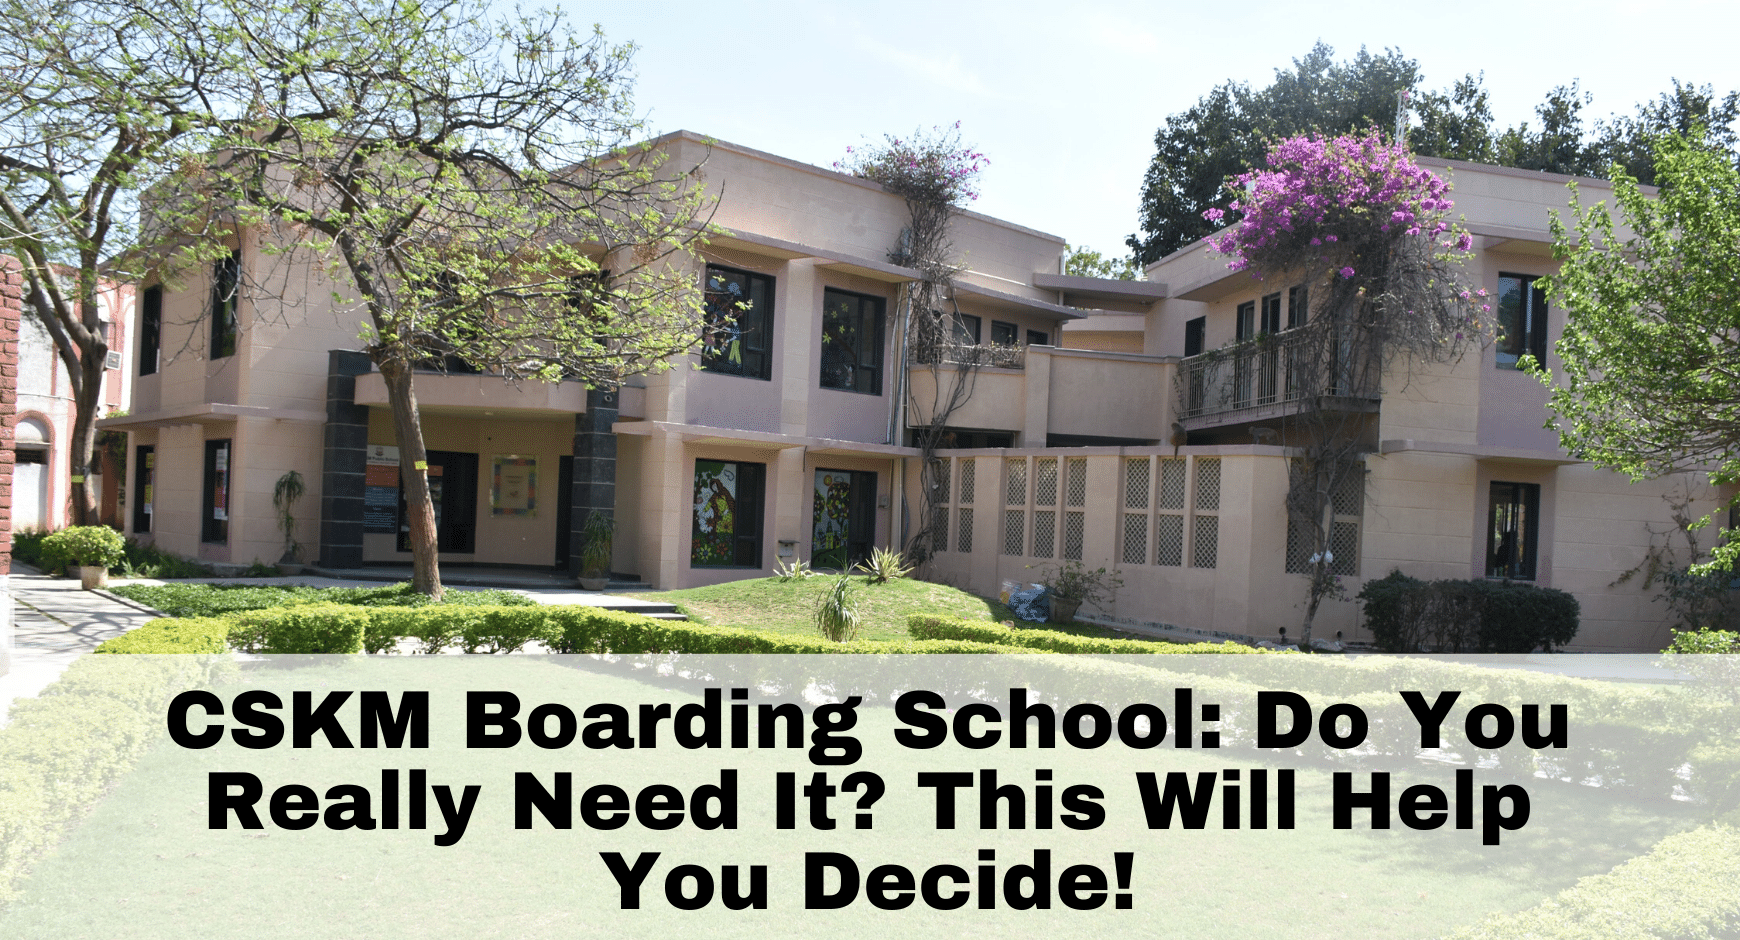 CSKM boarding school: Do You Really Need It? This Will Help You Decide!